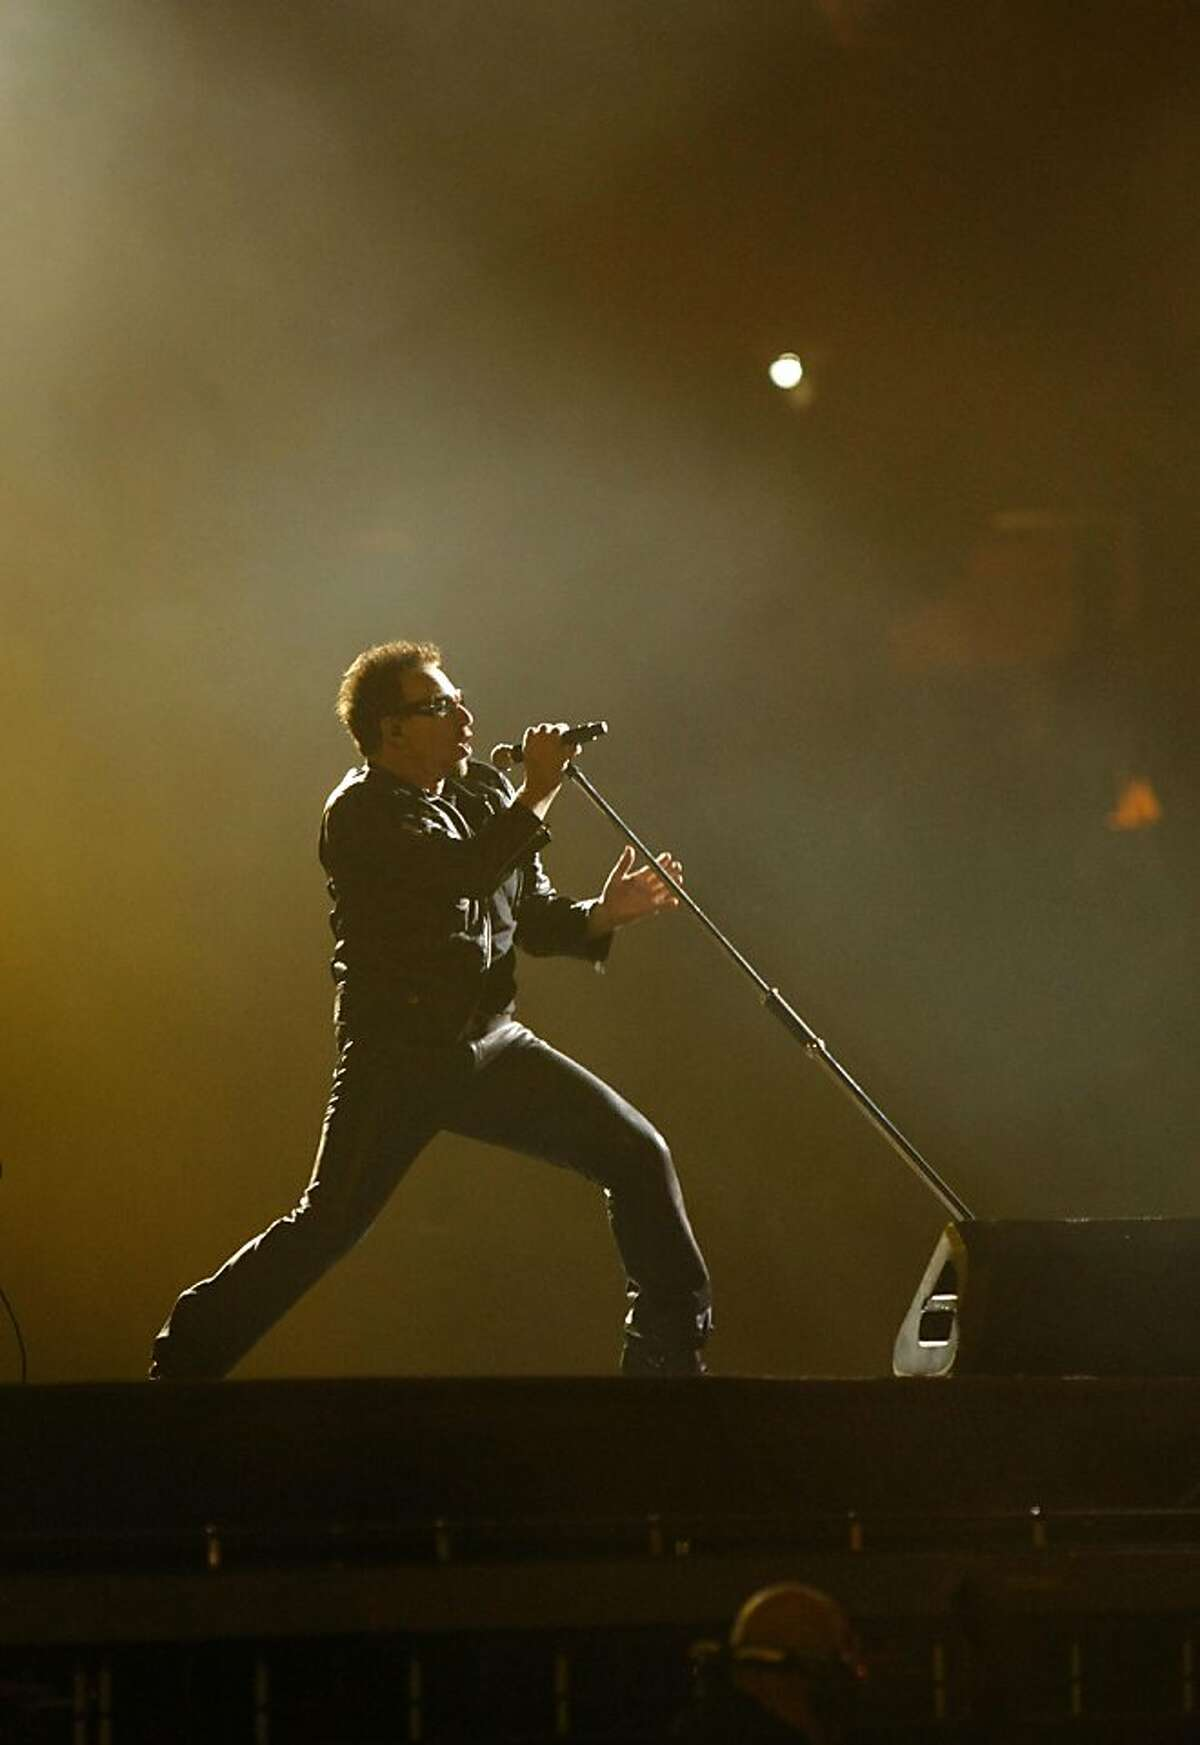 Bono of Irish rock group U2 at the Oakland-Alameda County Coliseum. U2 played its makeup date of the U2360 degrees world tour in Oakland Calif., June 7, 2011.